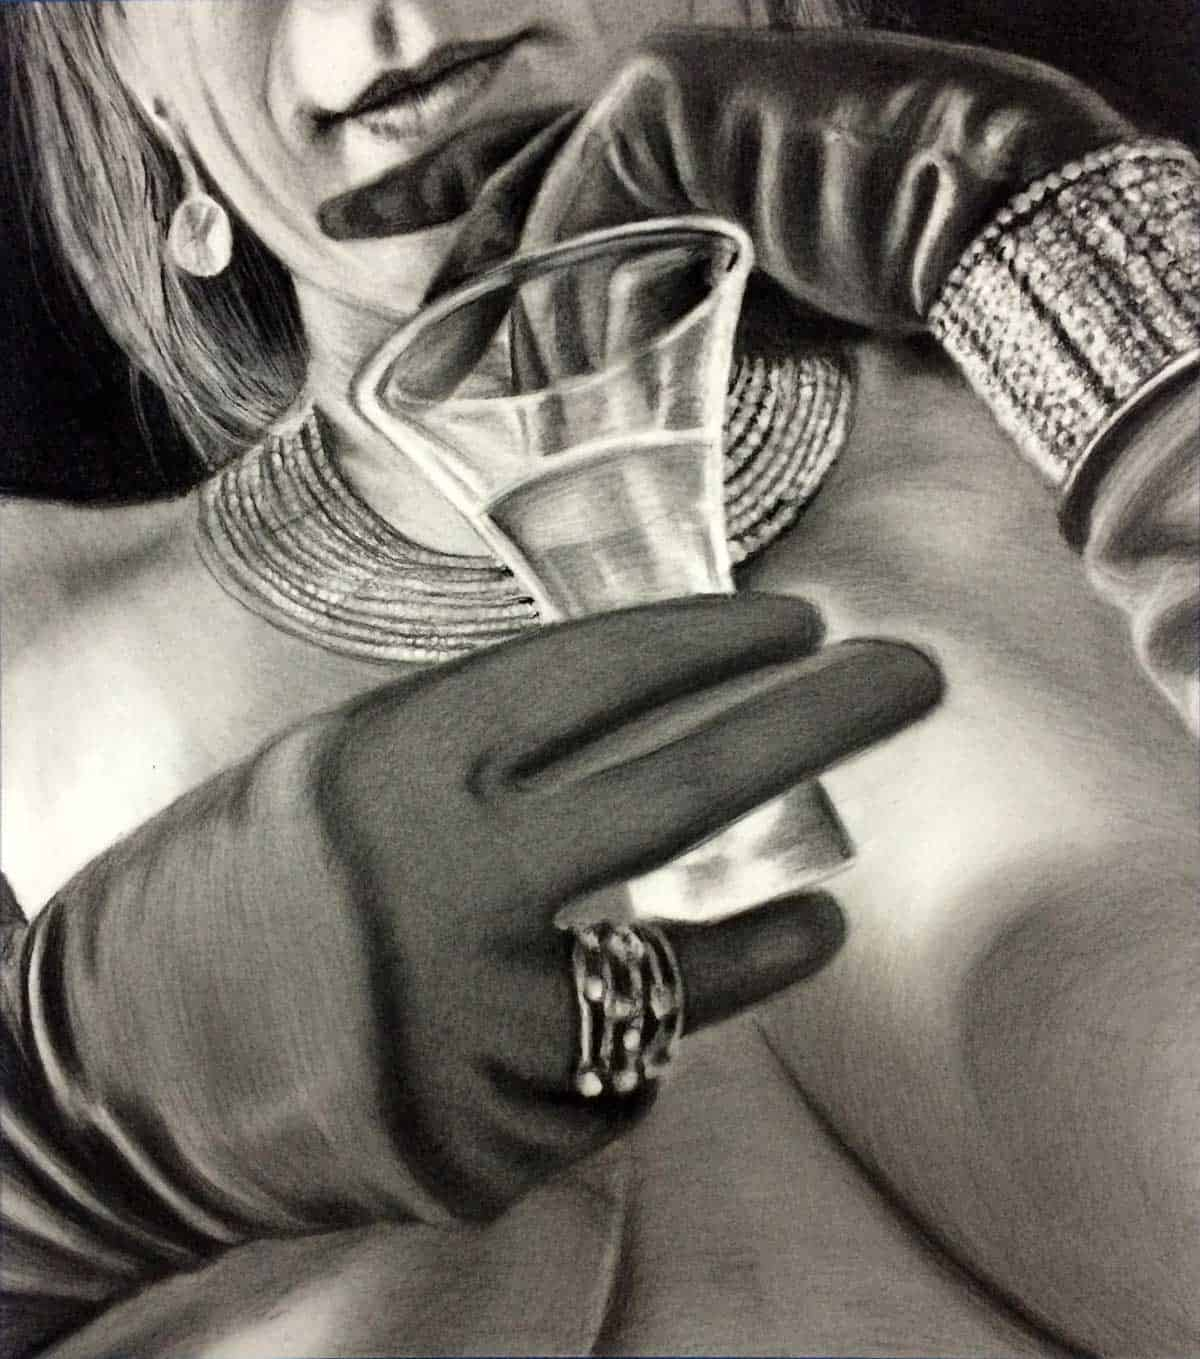 Zsa Zsa Charcoal Drawing by A.D. Cook